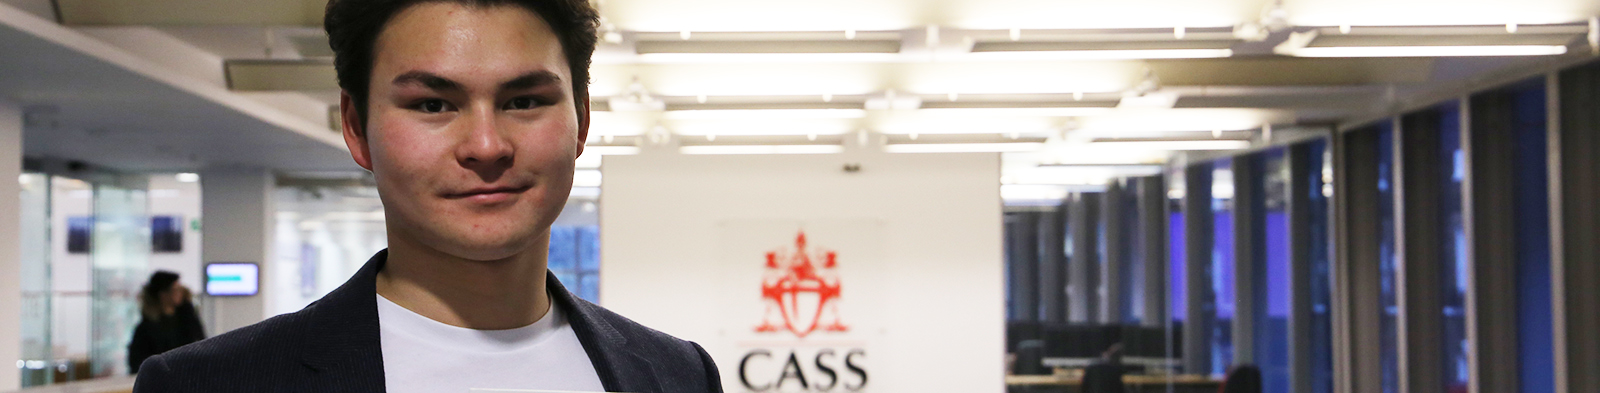 man standing in front of cass business school logo